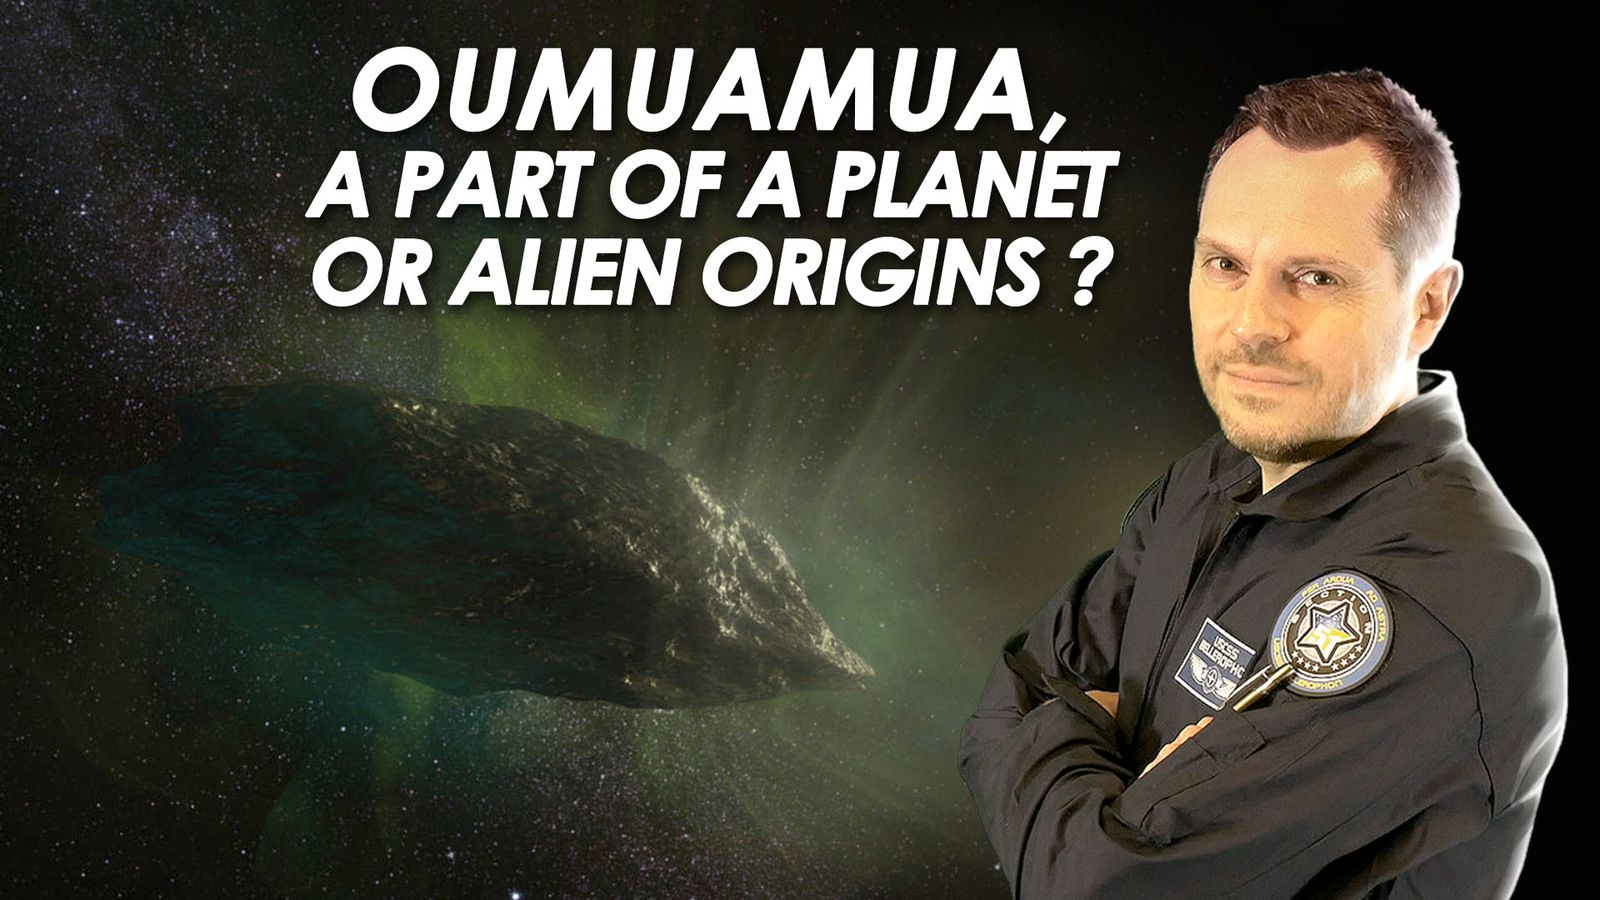 🌠 Was Oumuamua a Part of a Planet ?